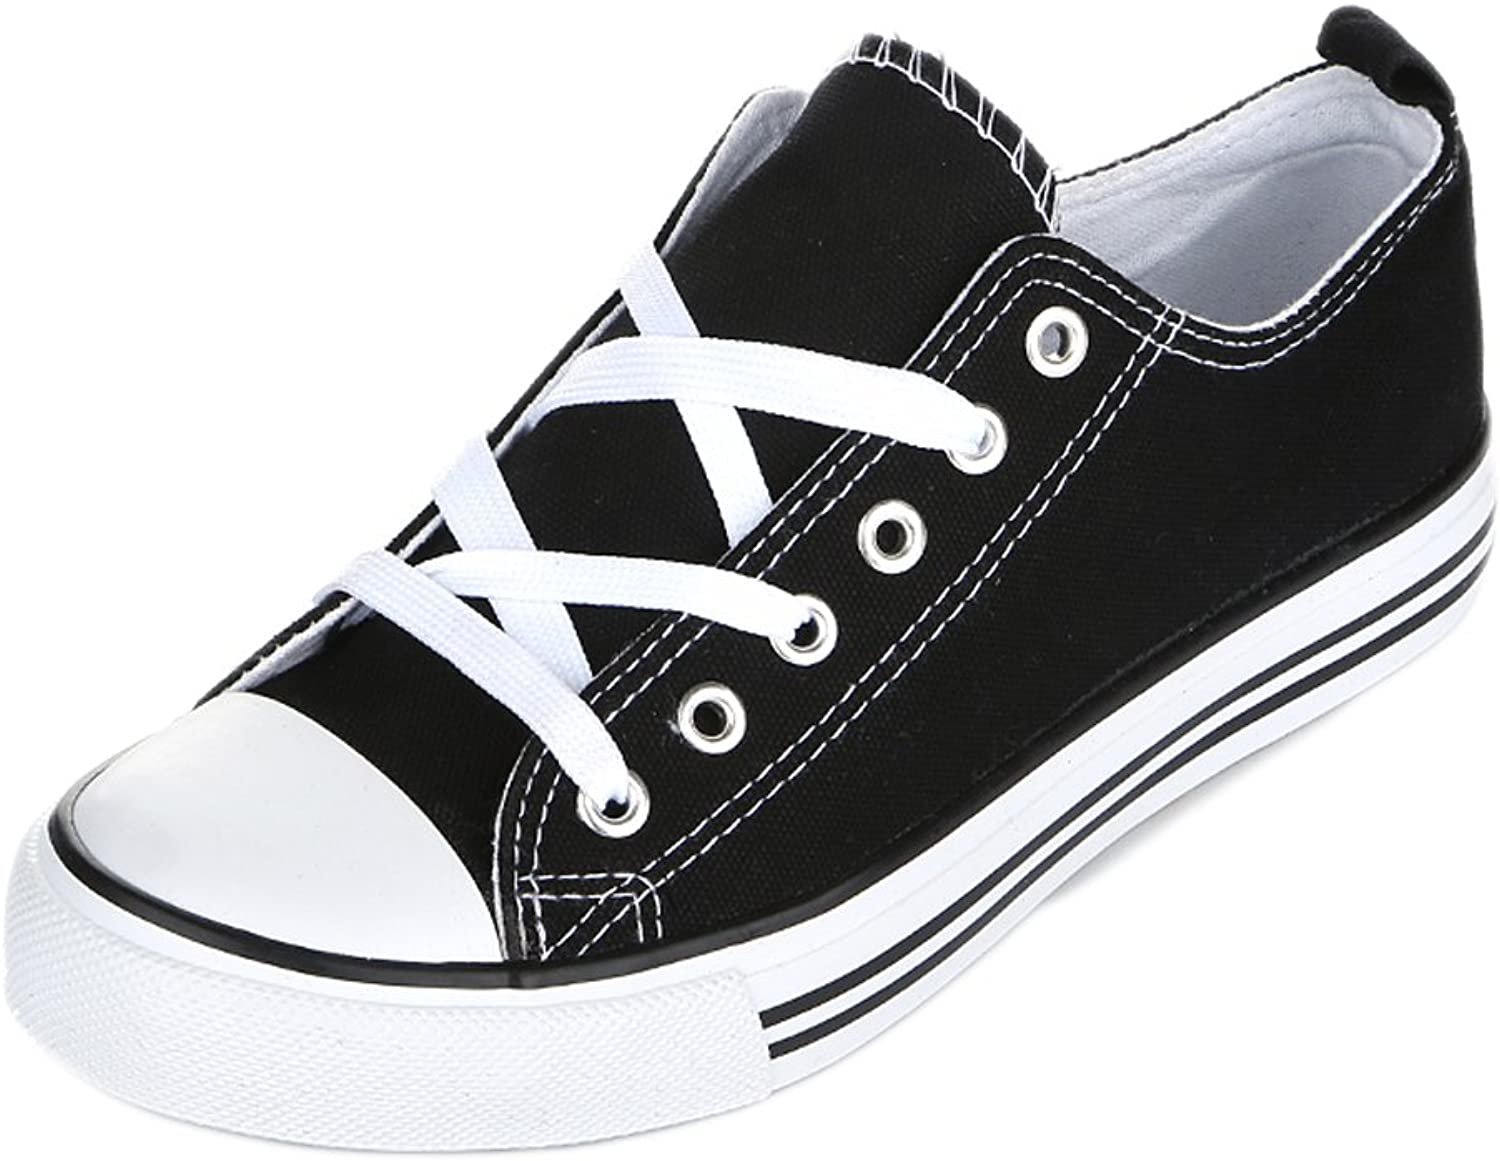 Shop Pretty Girl Women's Casual Canvas shoes Solid colors Low Top Lace Up Flat Fashion Sneakers